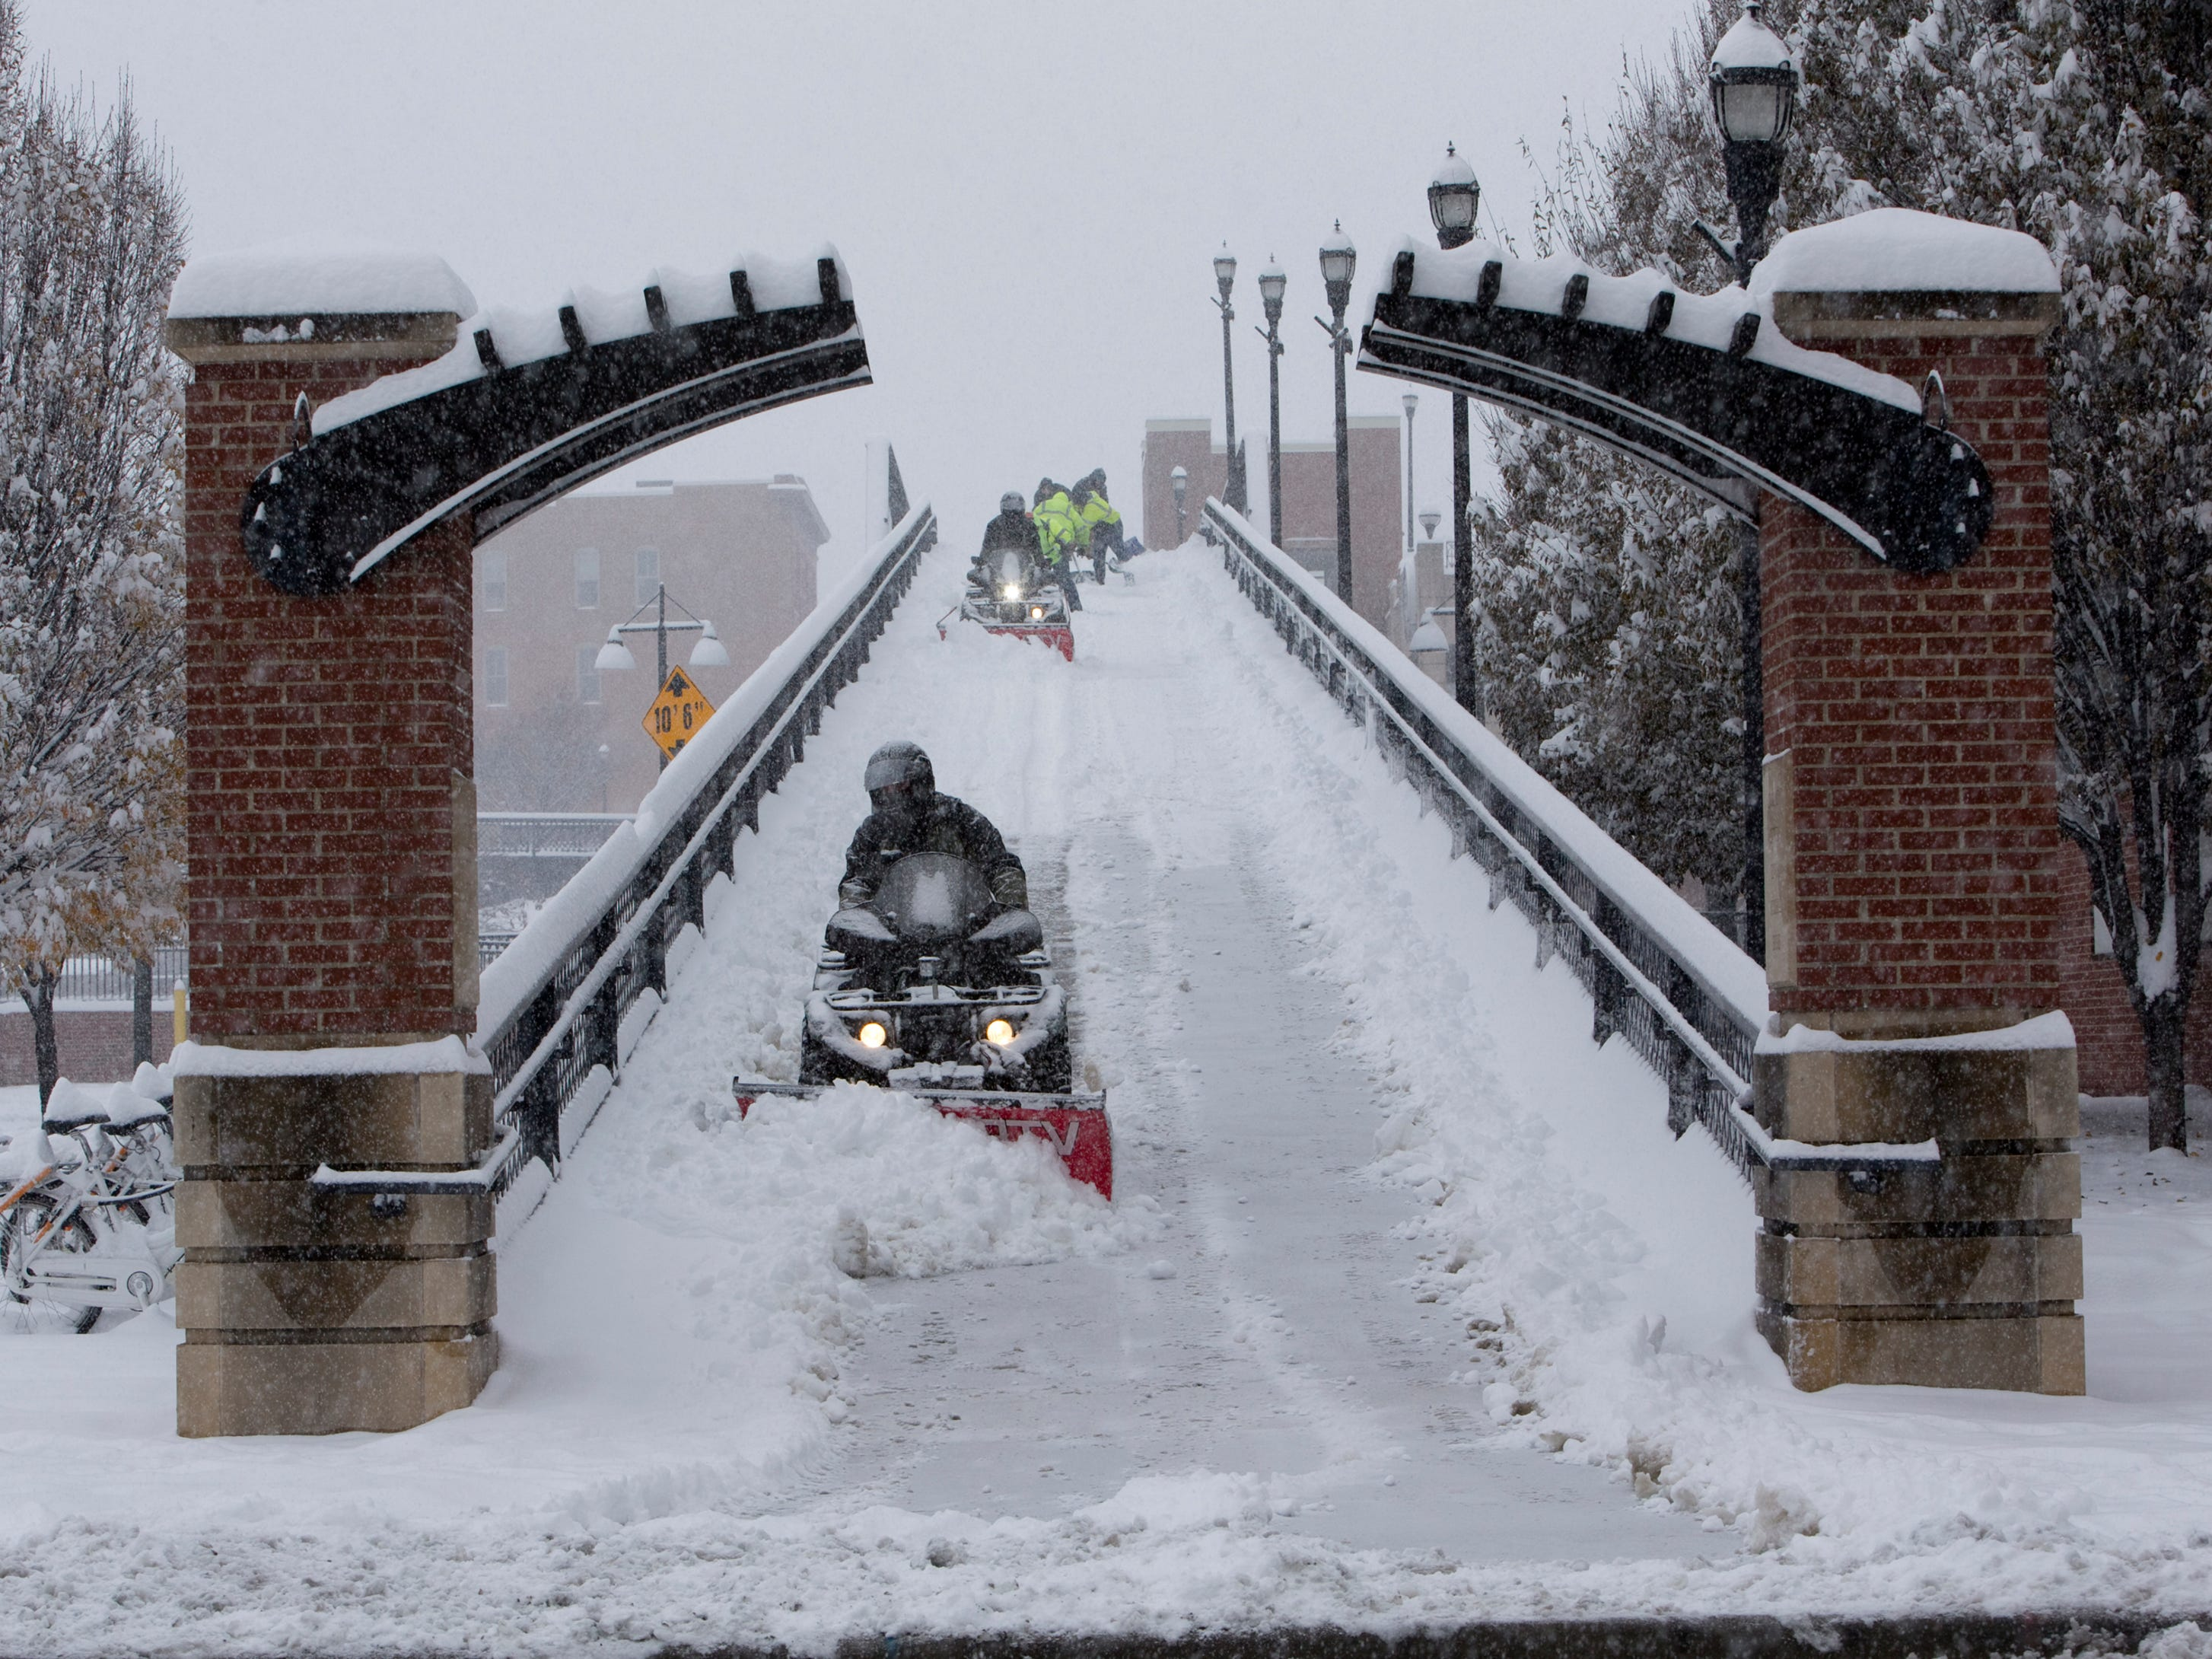 Workers plow and shovel the Martin Luther King Bridge at 1st Street and Salem Avenue in Roanoke, Va., Sunday, Dec. 9, 2018.